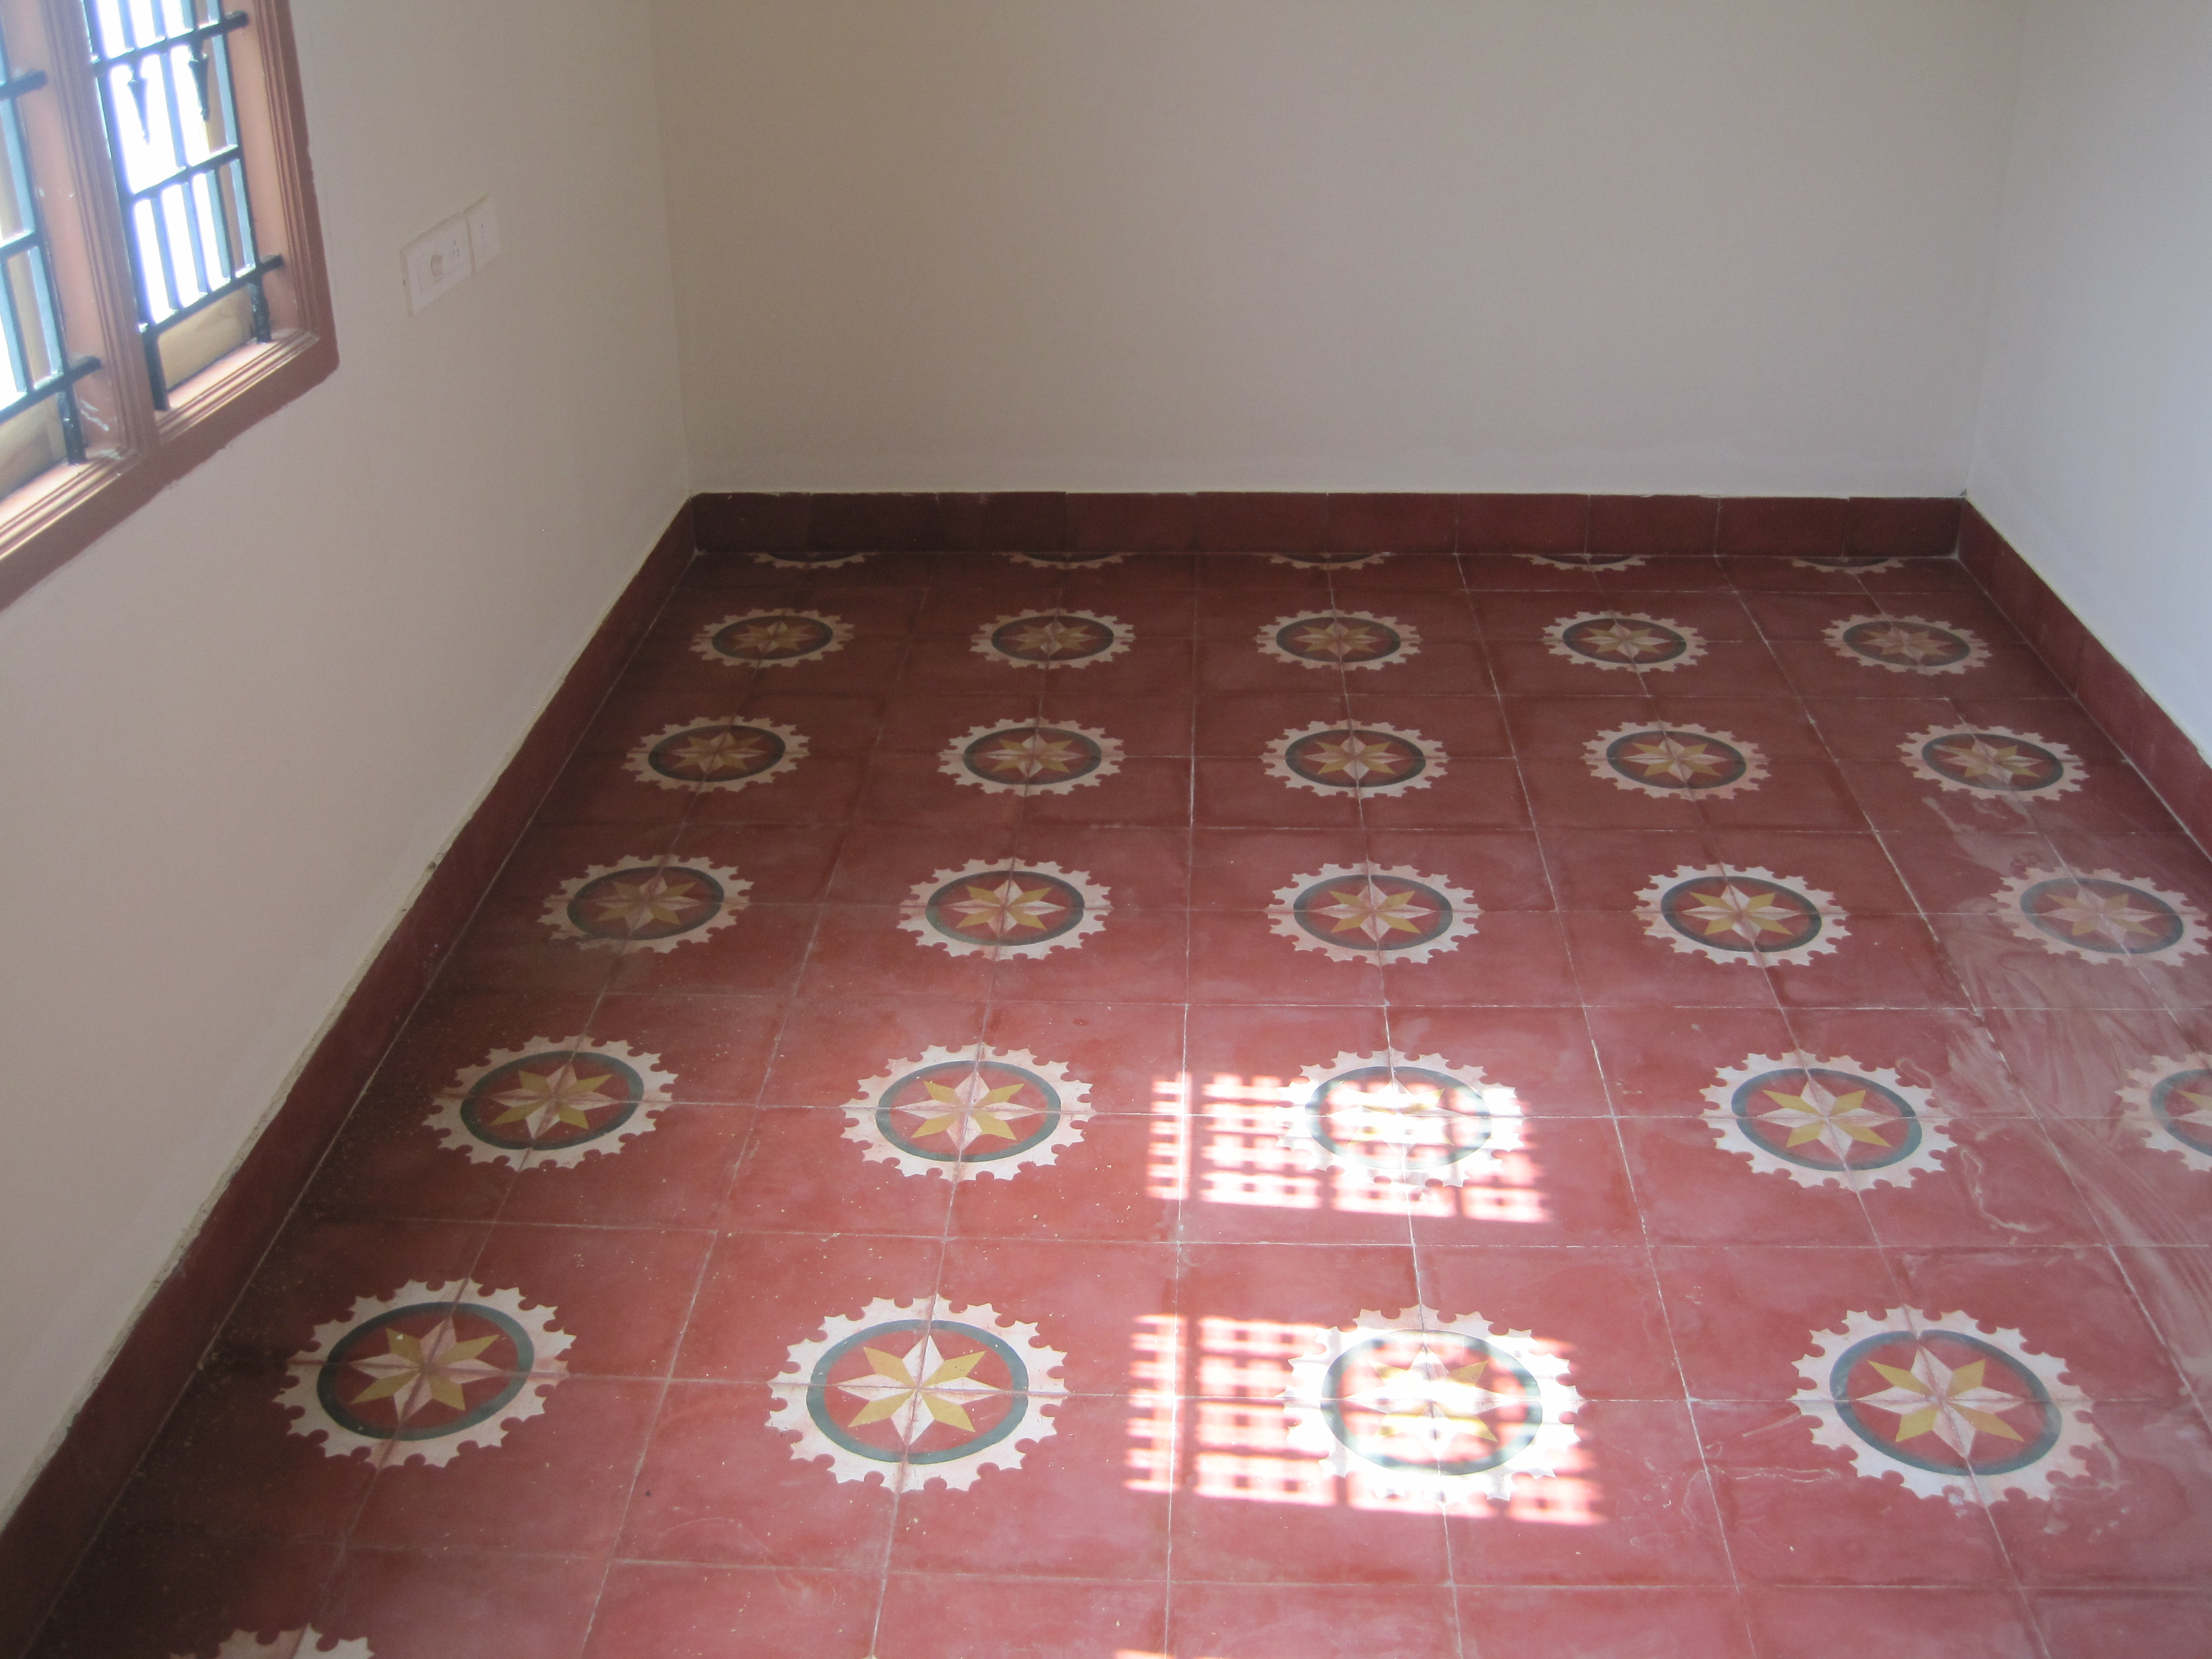 Charming 12X12 Floor Tiles Big 1930S Floor Tiles Flat 2 Hour Fire Rated Ceiling Tiles 2 X 4 Subway Tile Old 24 Inch Ceramic Tile Black24X24 Drop Ceiling Tiles Chettinadu Tiles | Karaikudi | Athangudichettinadutiles | 9th Project